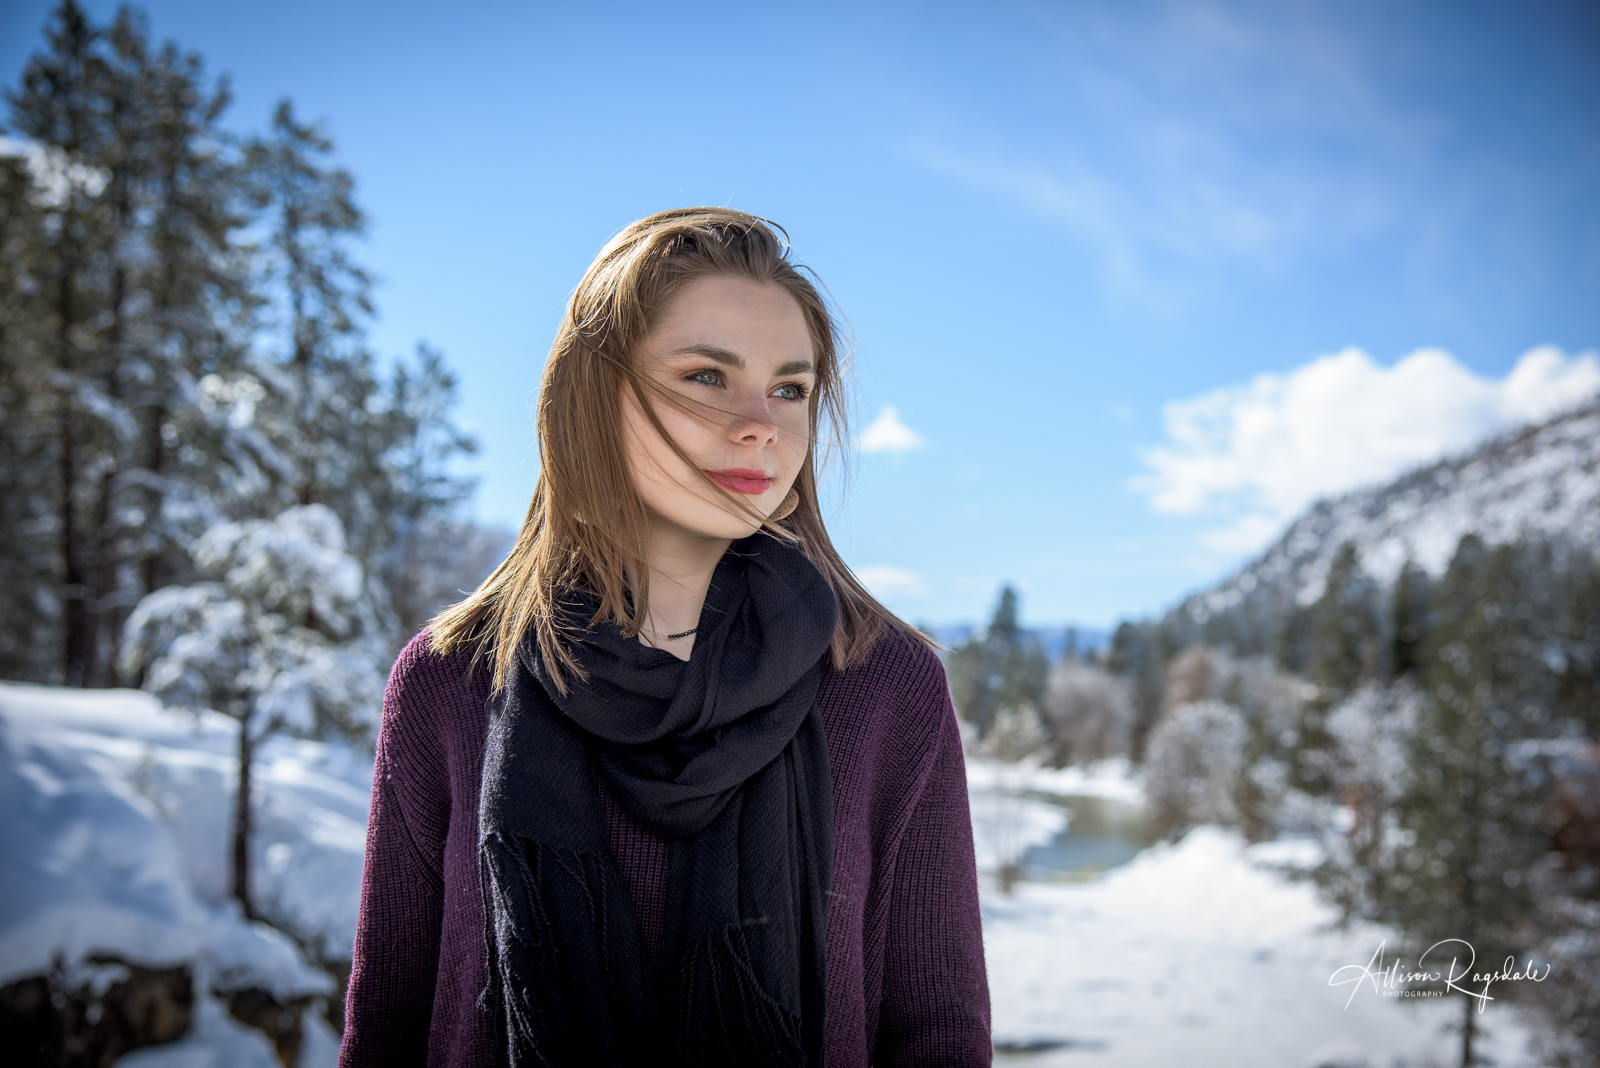 Kirby Niermeyer's Durango Colorado Winter Senior Portraits